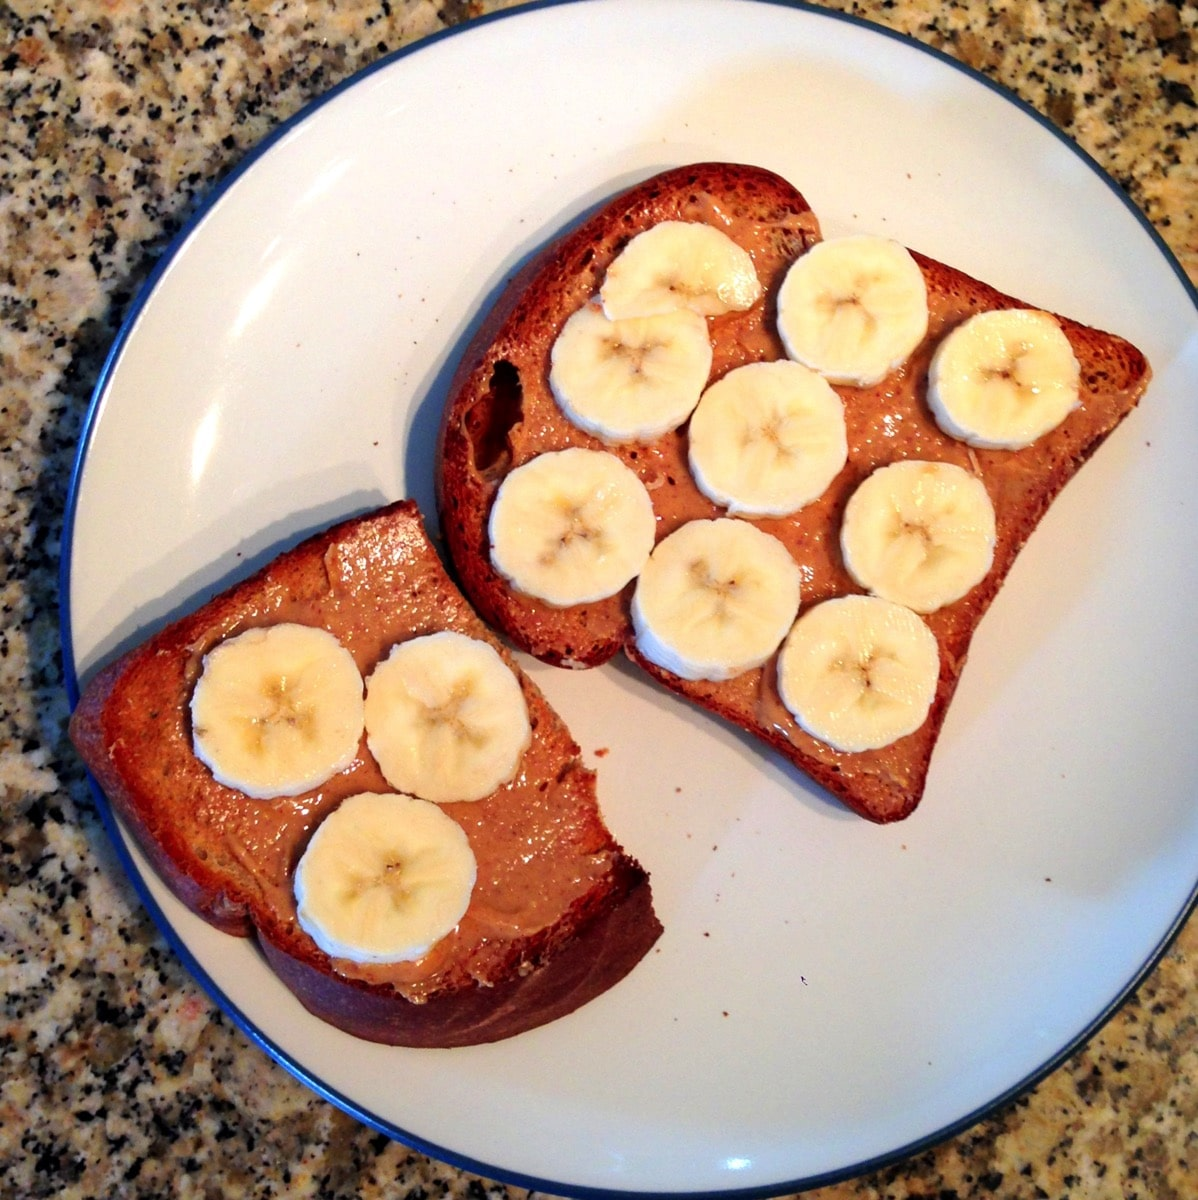 Toast and banana